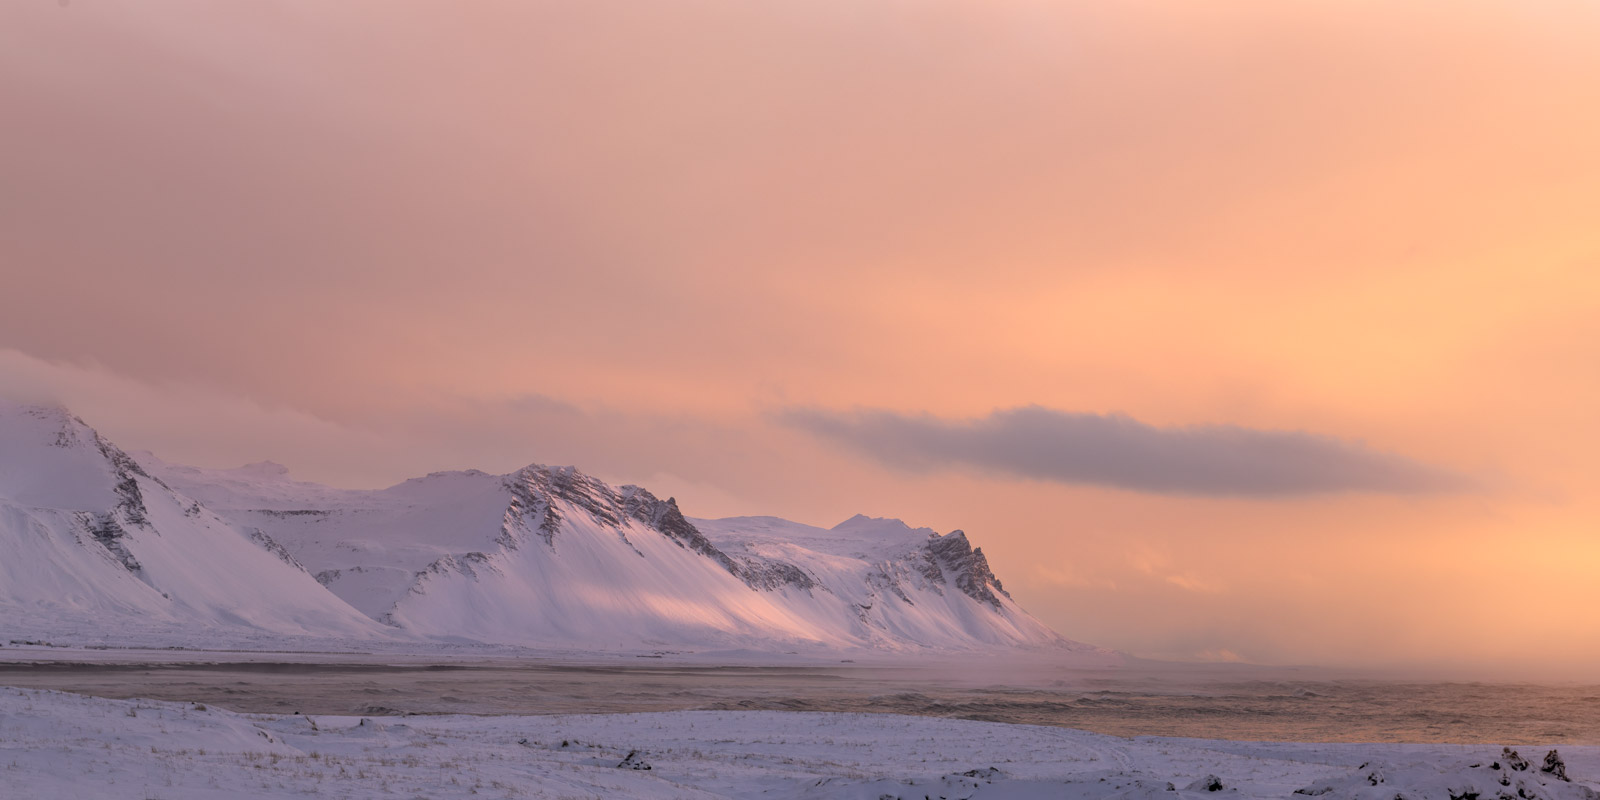 Iceland, Snaefellsness, Peninsula, Sunrise, Mountains, Ocean